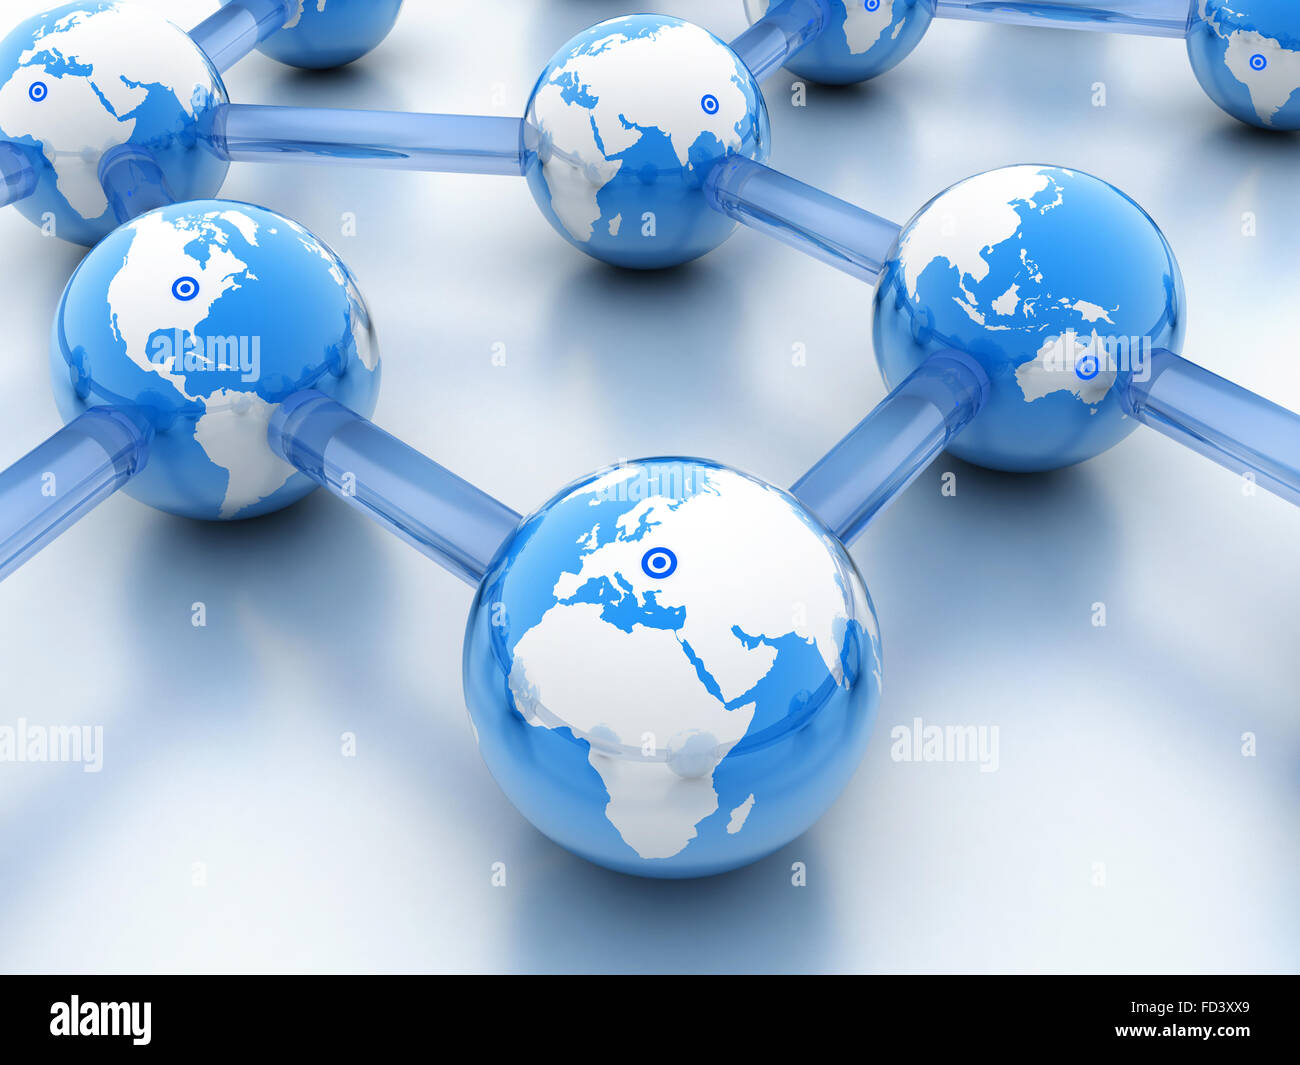 Abstract World-wide web on blue background (done in 3d) - Stock Image